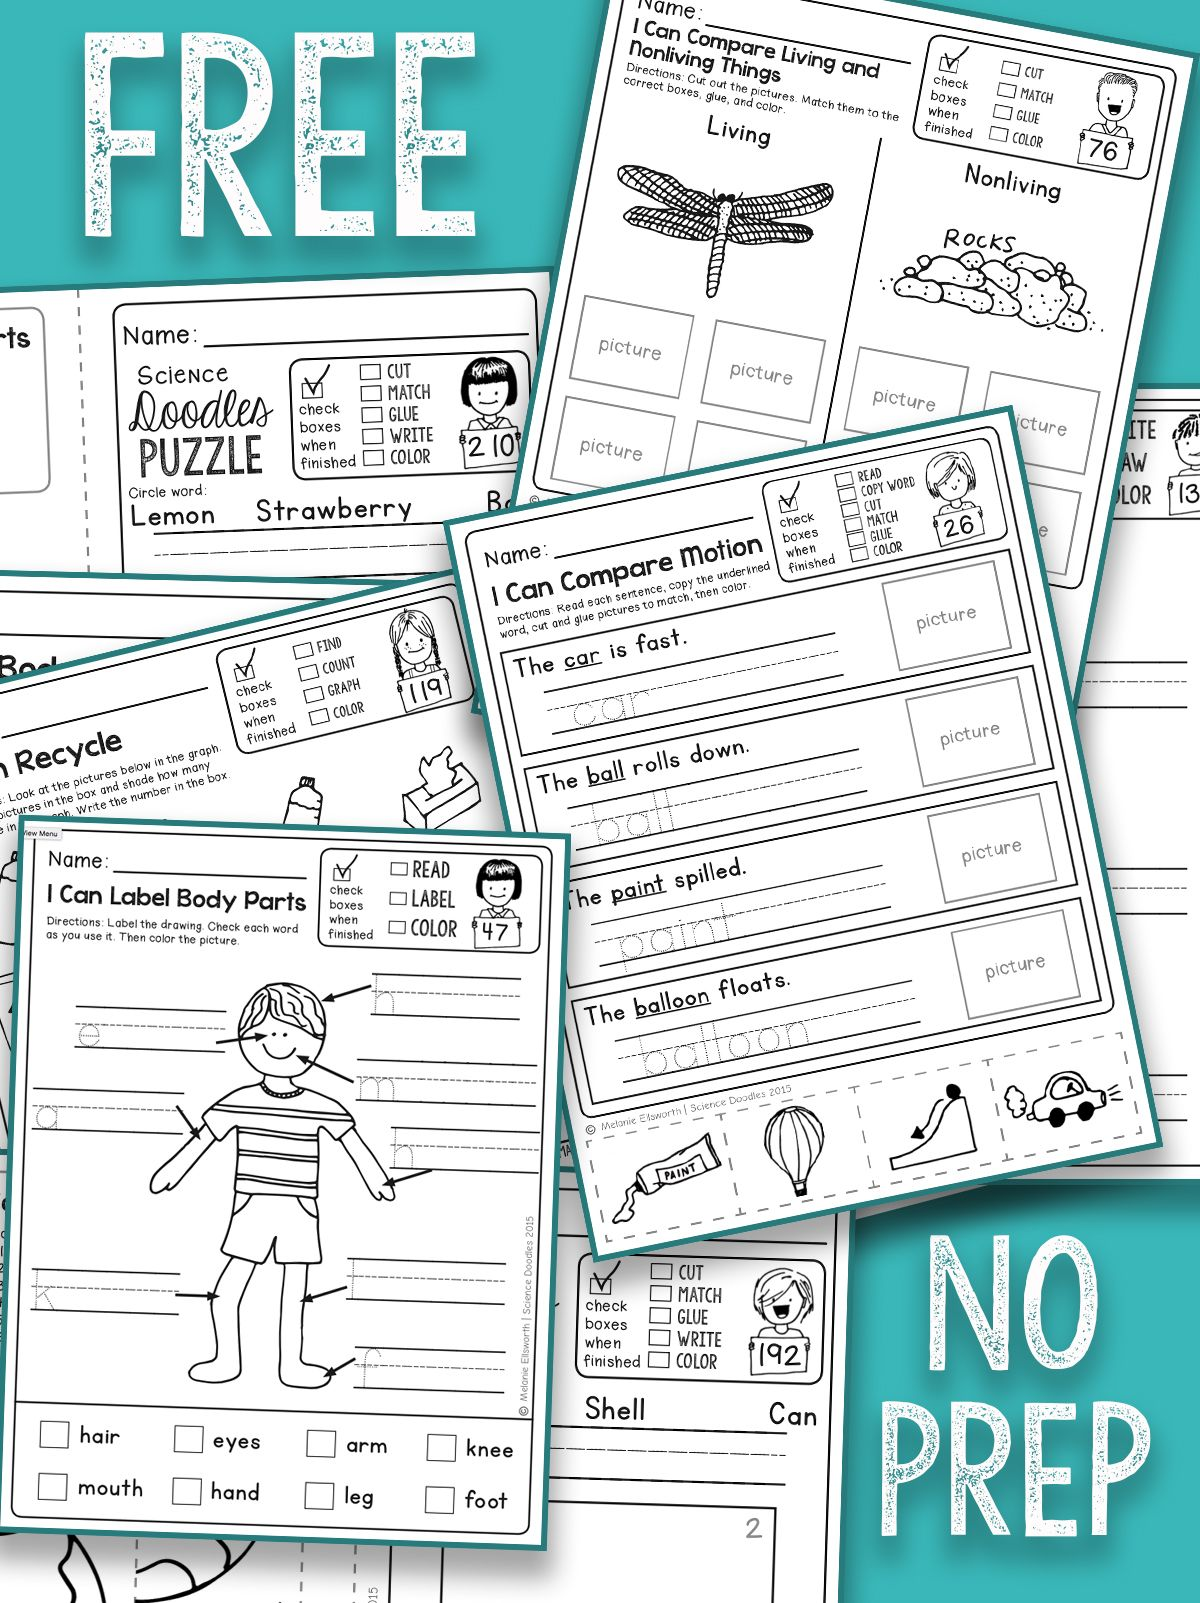 It is an image of Eloquent Free Science Printables